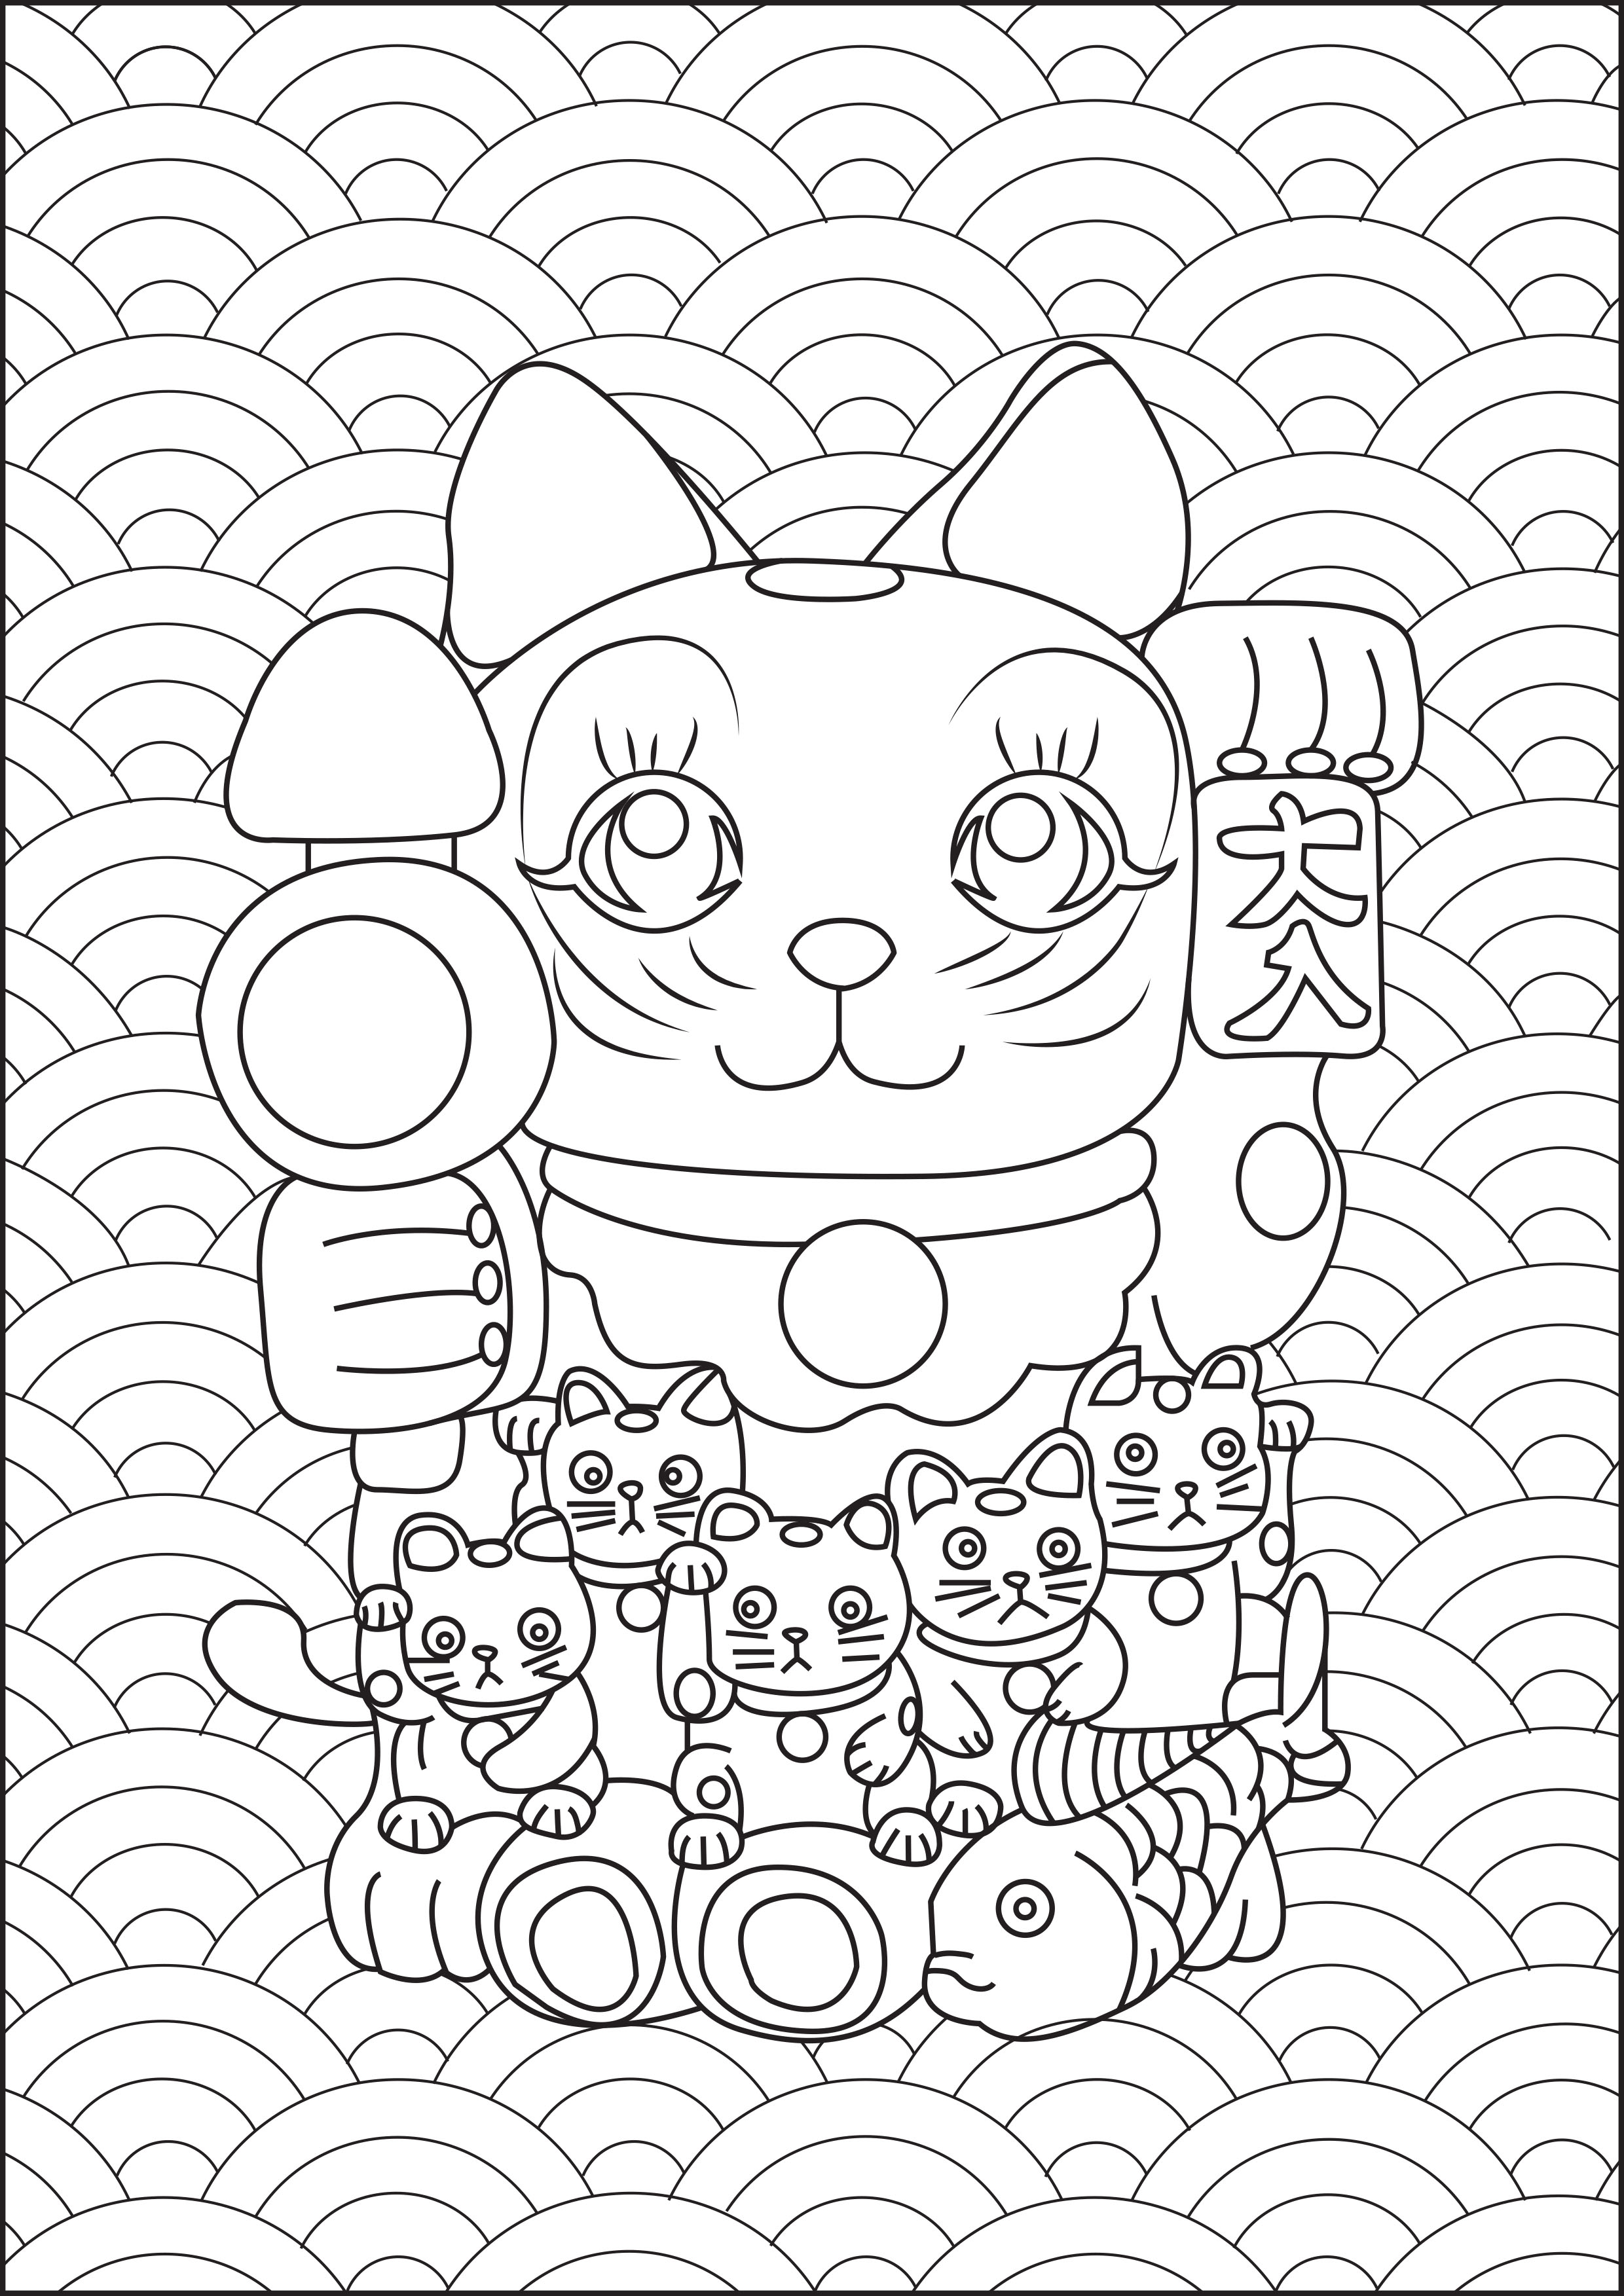 These little Maneki Neko kneeling on a bigger one are too cute ... Add them some colors !